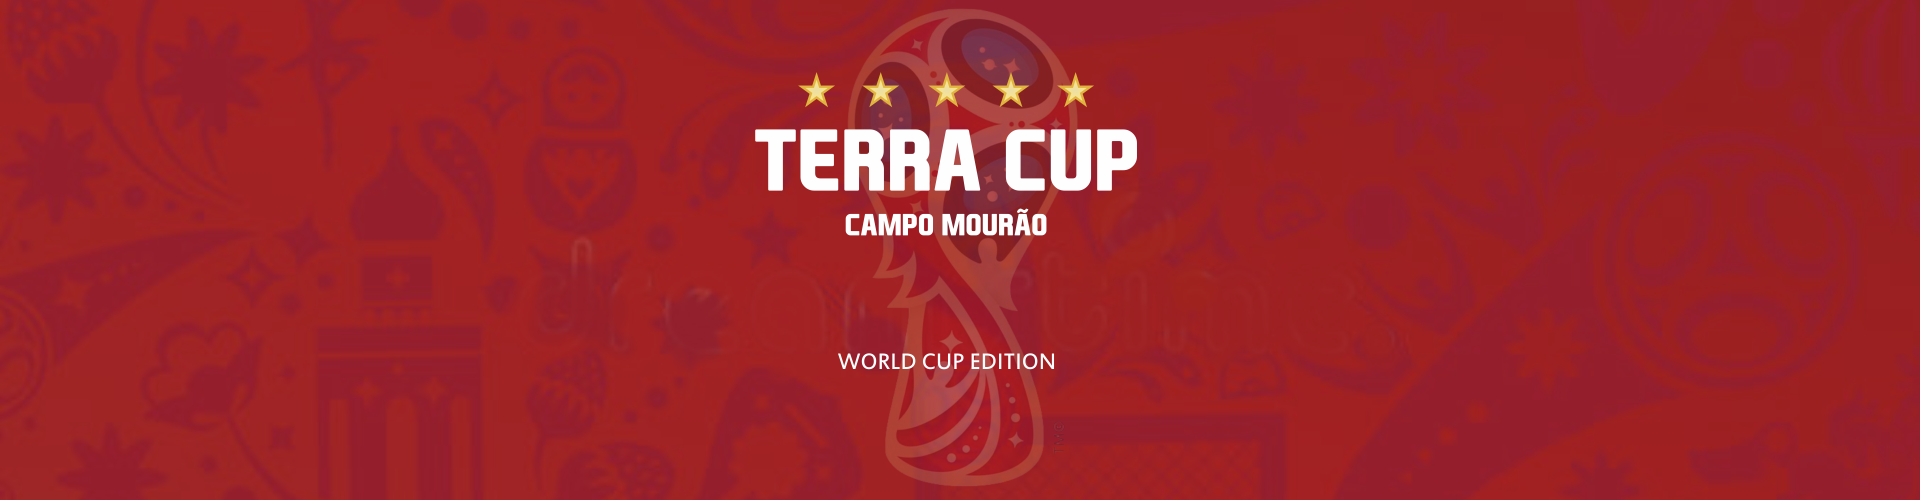 Terra Cup – World Cup Edition